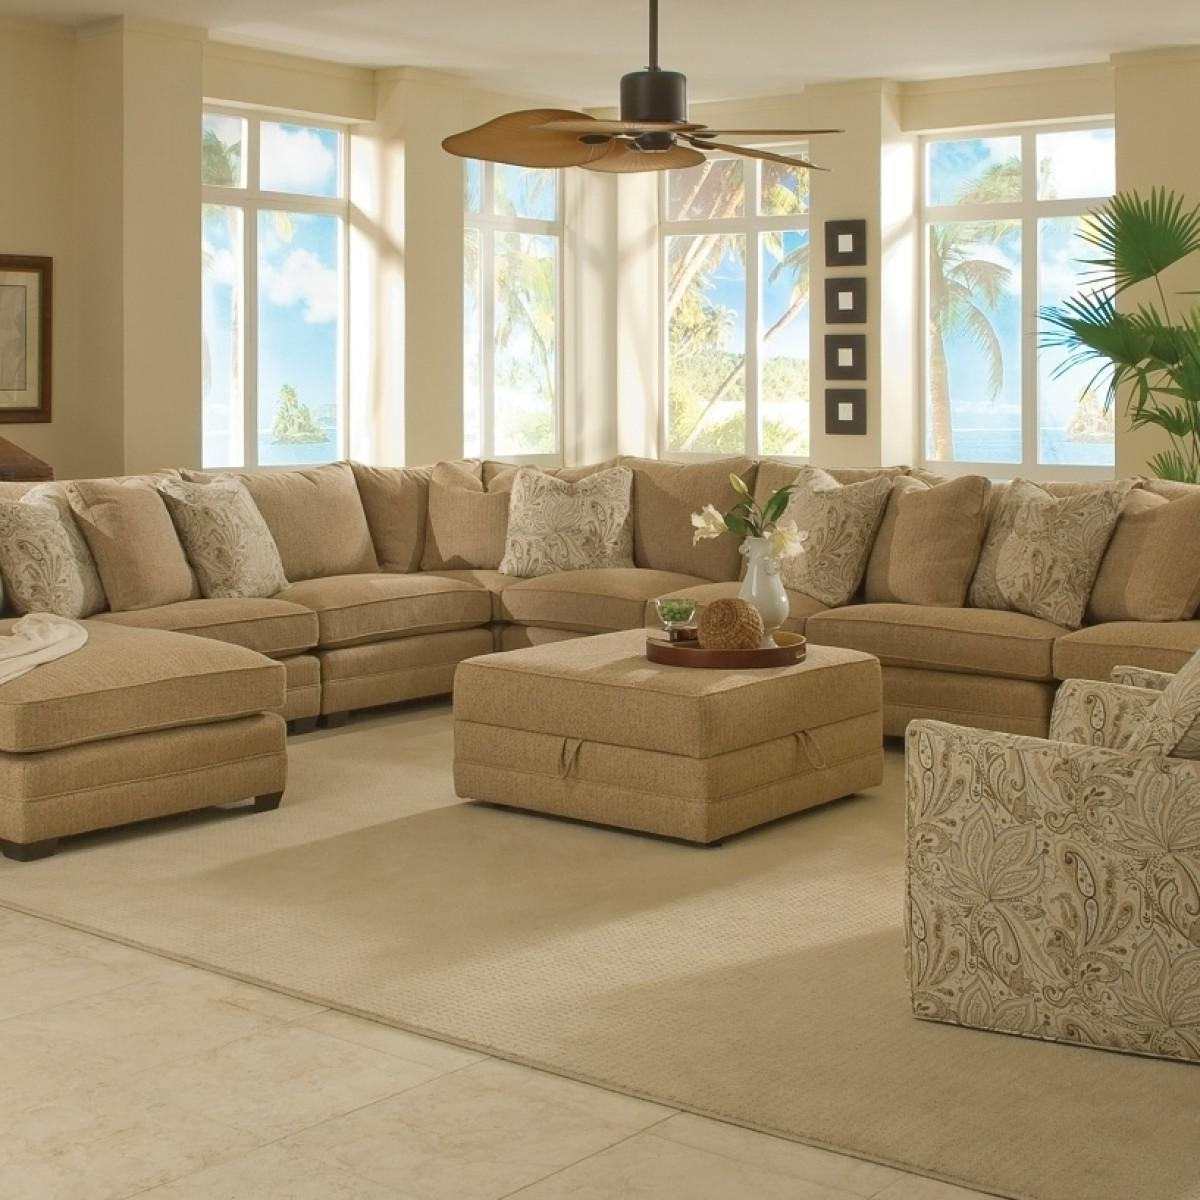 Trendy Furniture: Enchanting Large Room In Tan Color And Sectional Sofa In Deep  Seating Sectional